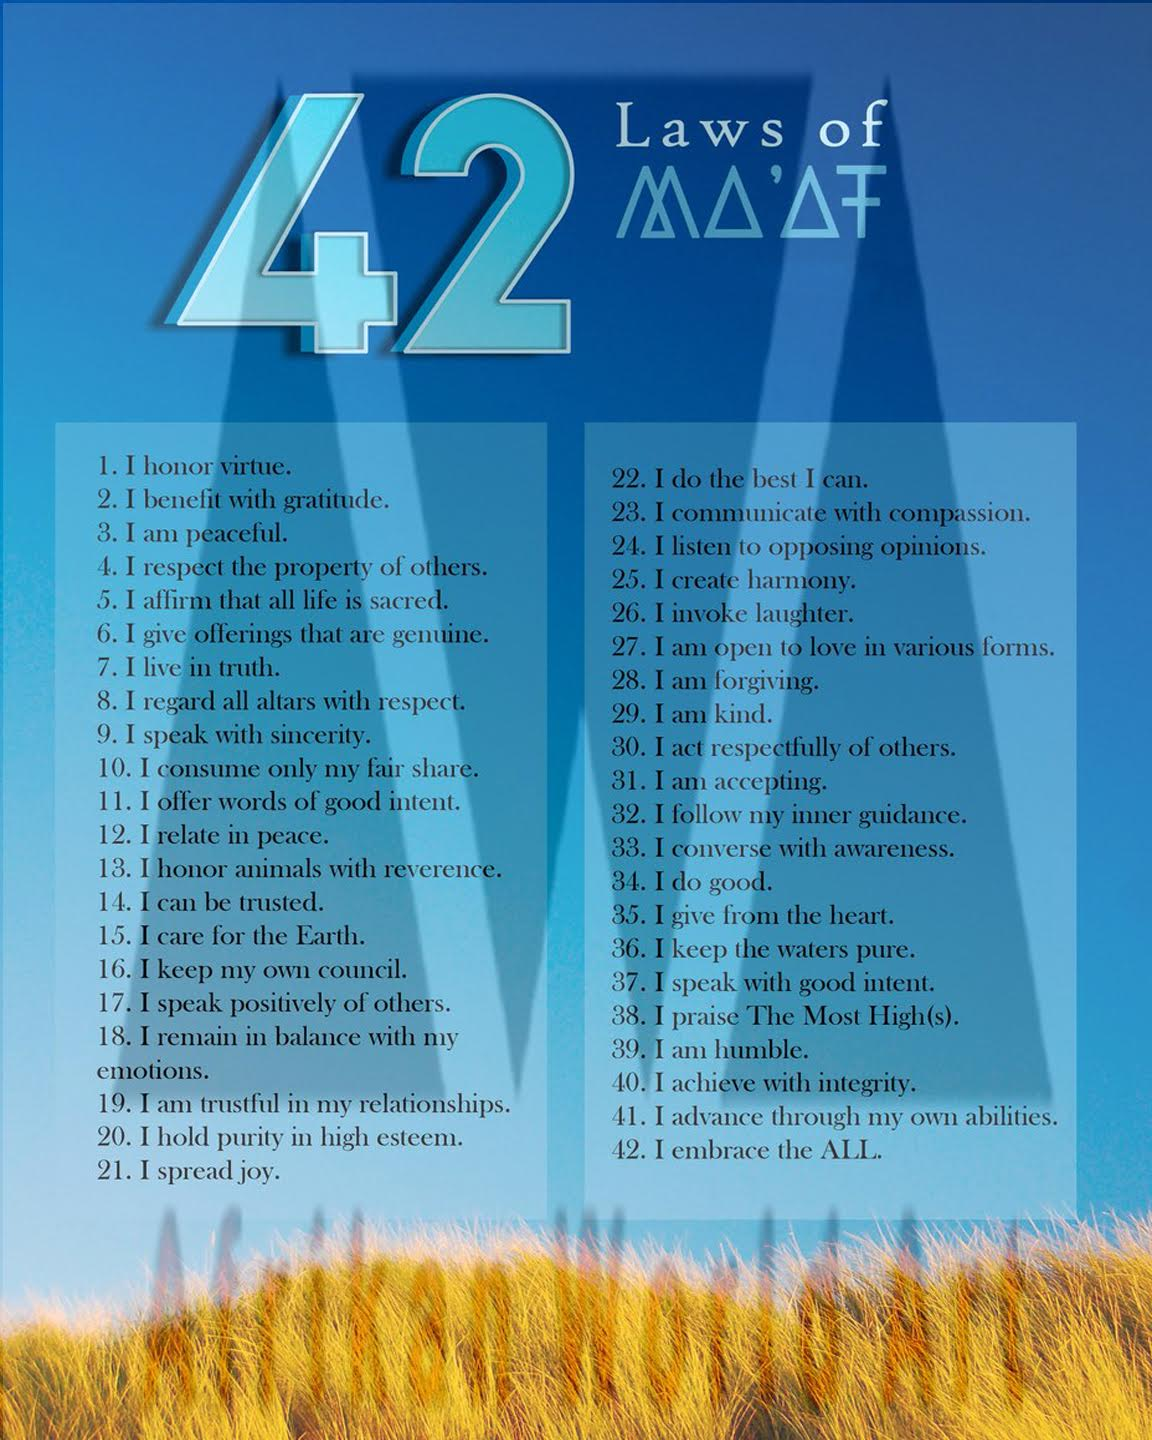 Laws of Maat